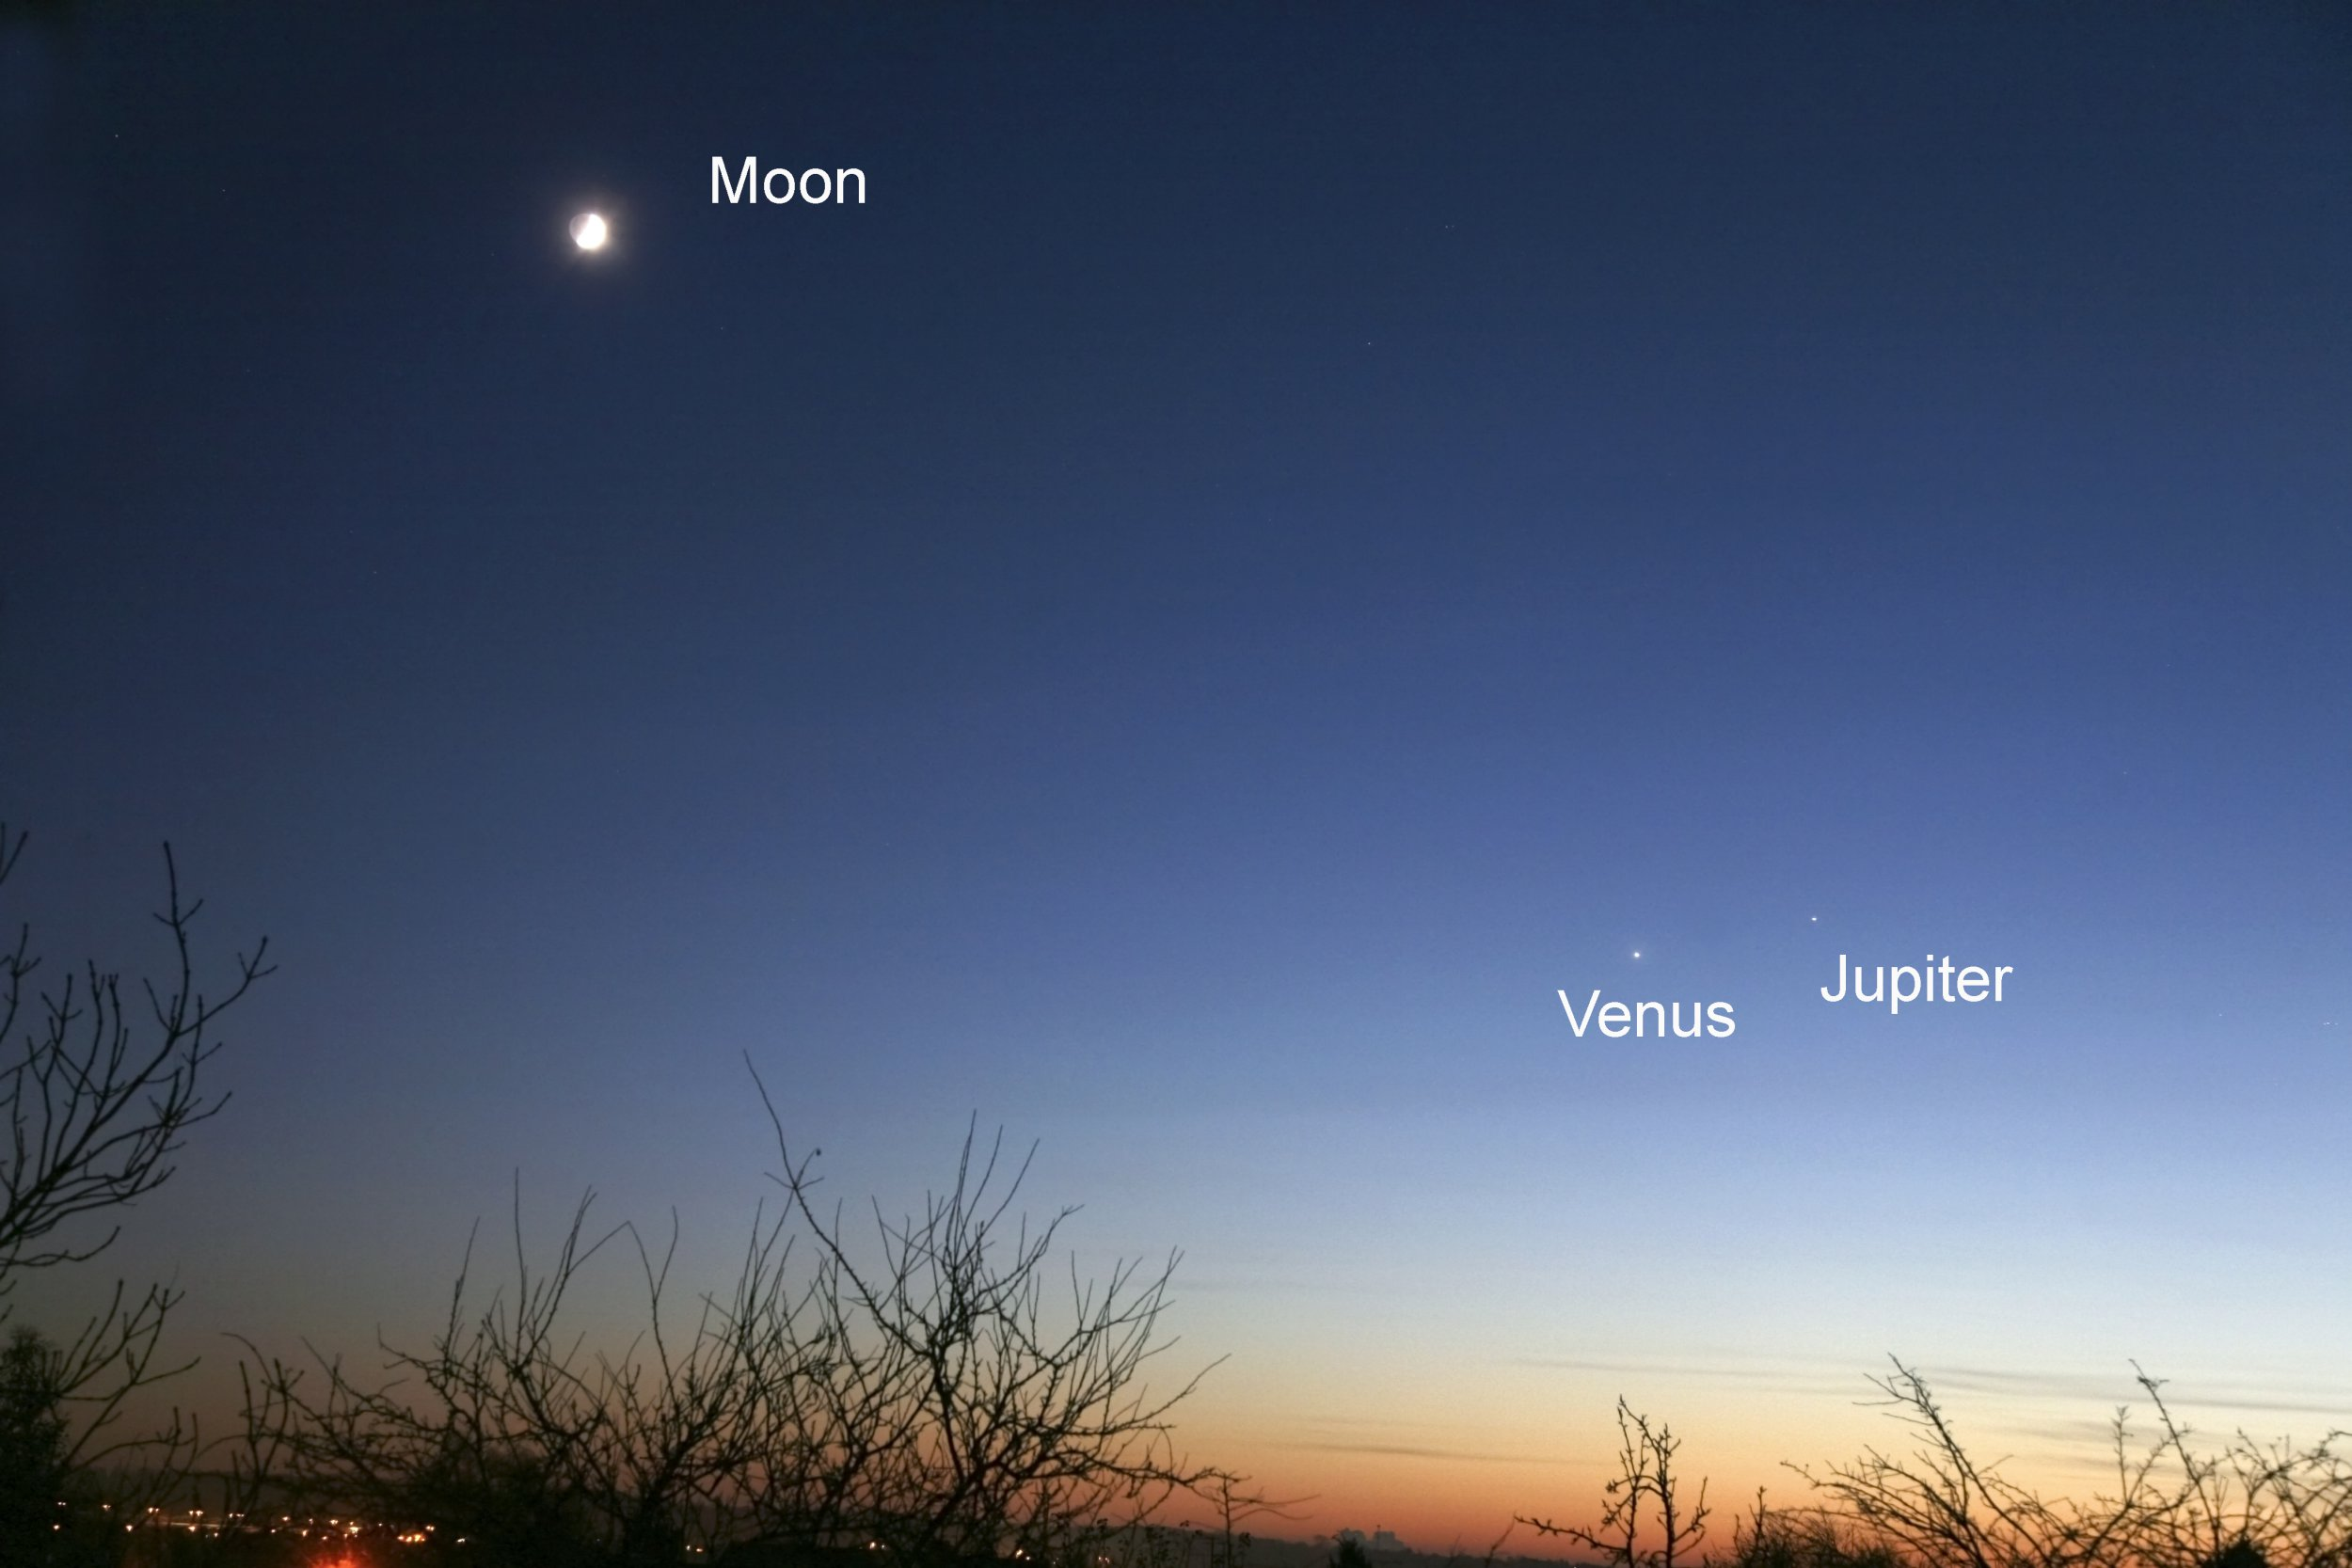 Watch the sky tomorrow for a rare sight of Jupiter and Venus together